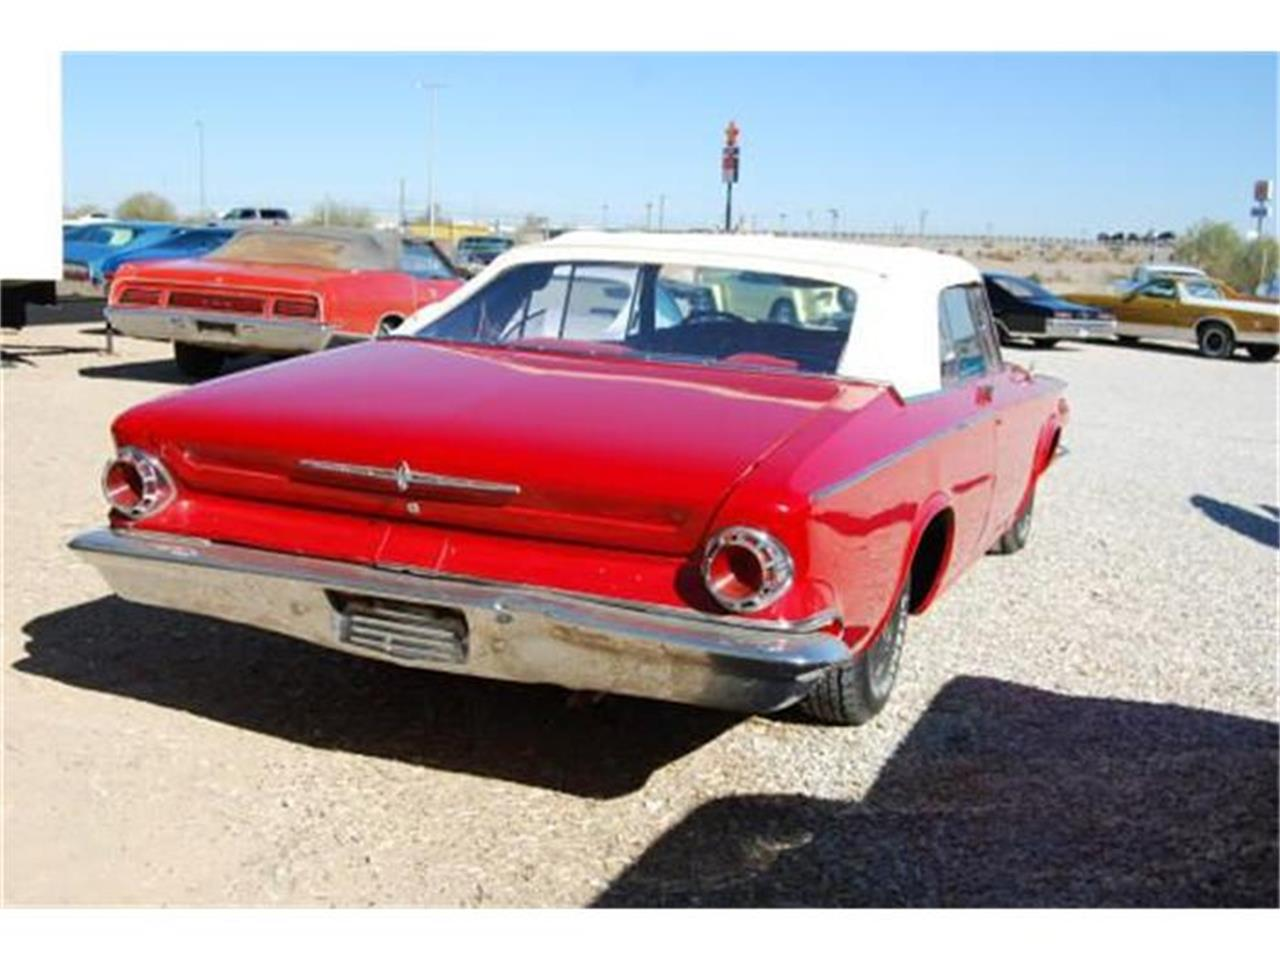 1963 Chrysler Newport For Sale  Classiccarscom  Cc429872. Best Home Security Alarms Stock Trading Games. Progress Knowledge Base Products You Can Sell. 18 Month Programs Degrees Oracle Public Cloud. Aviation Insurance Association